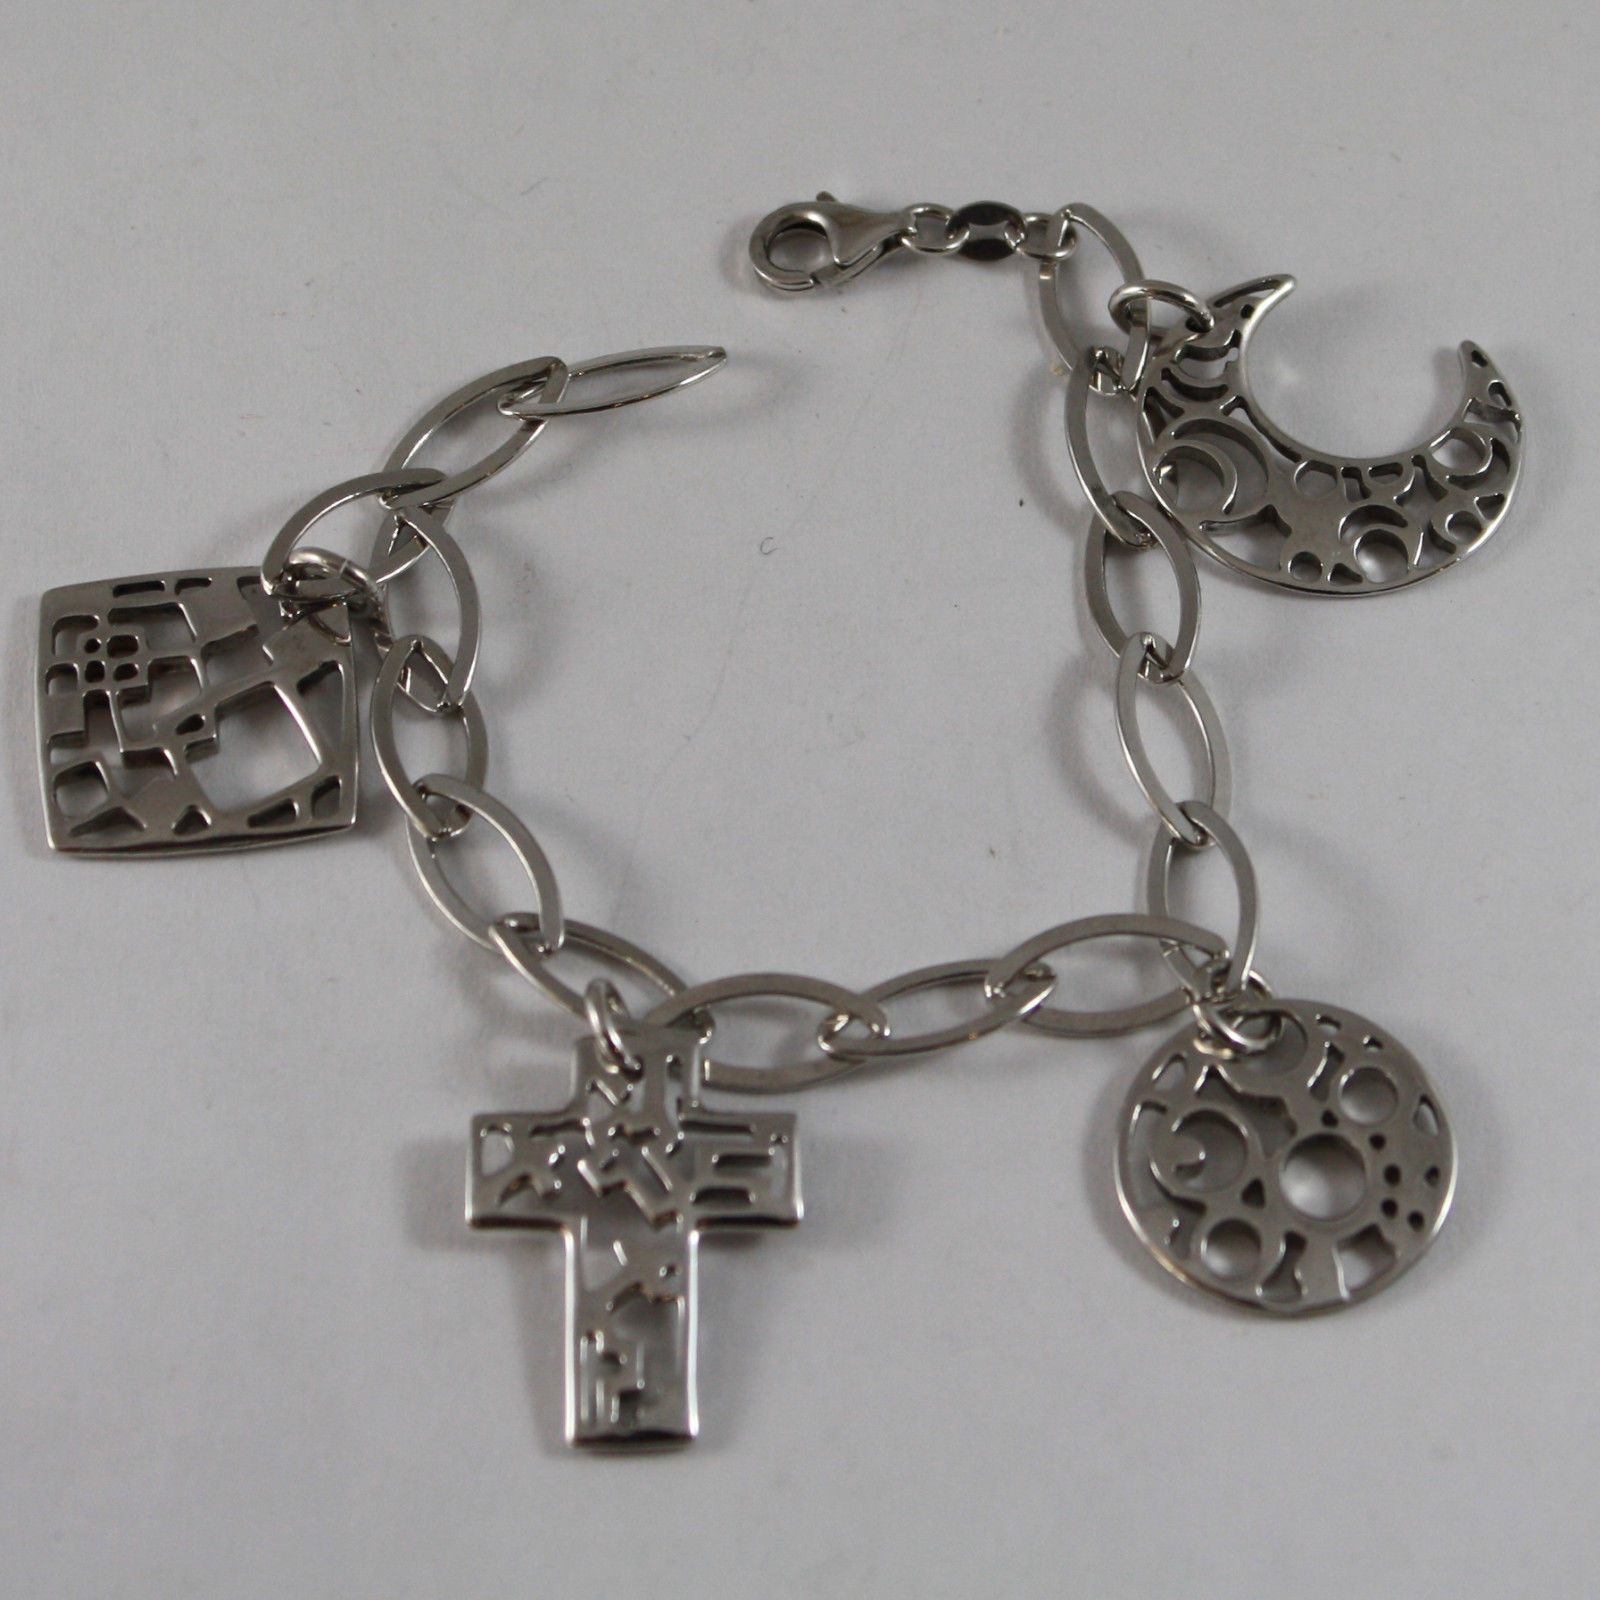 .925 RHODIUM SILVER BRACELET WITH PERFORATED CHARMS